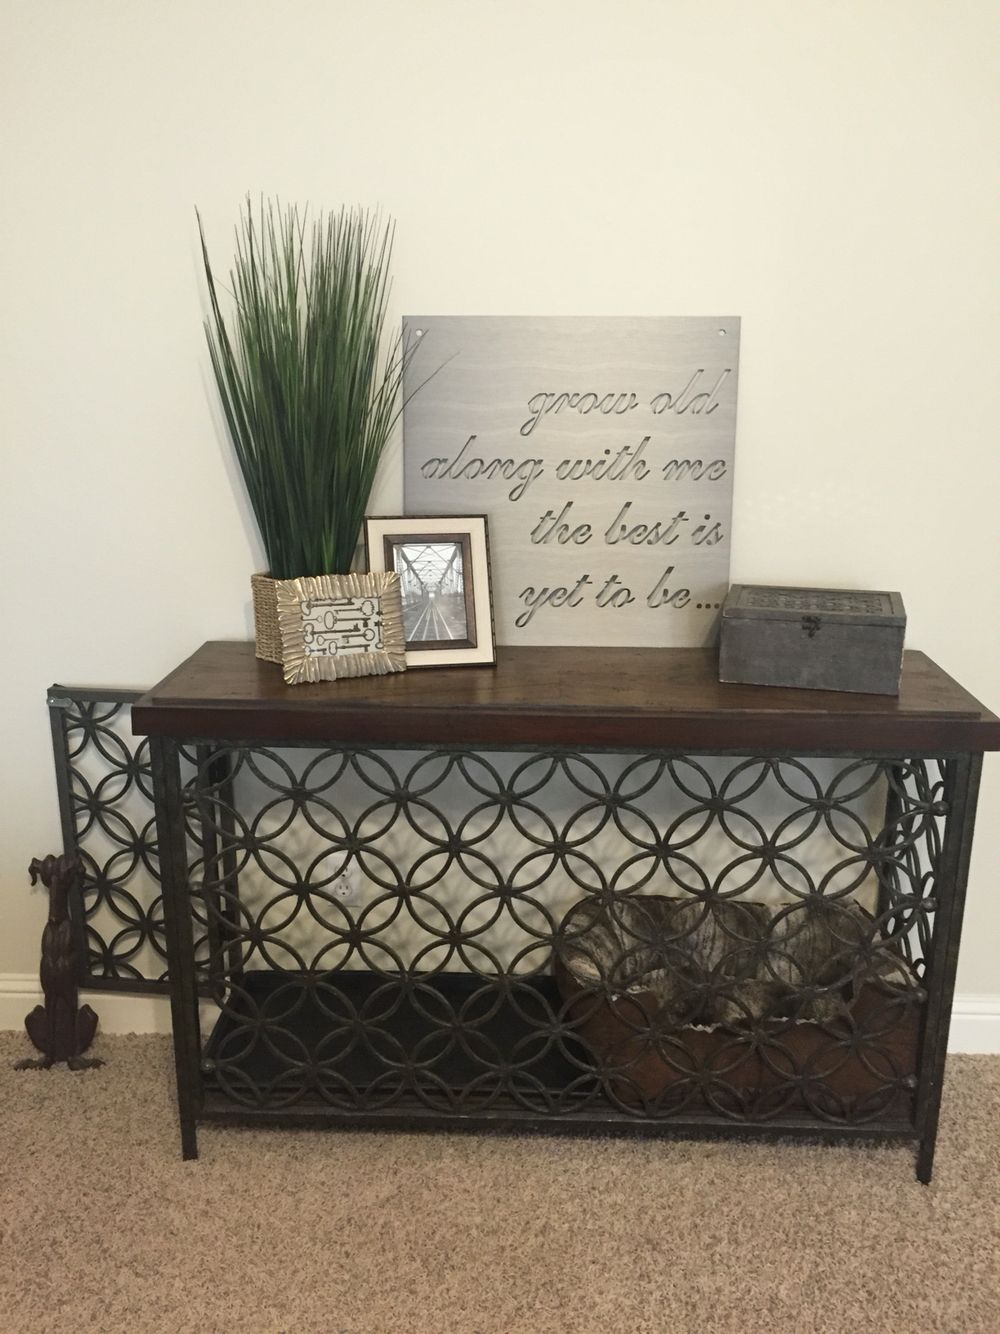 Turned a console table into a decorative dog crate Keep Calm and